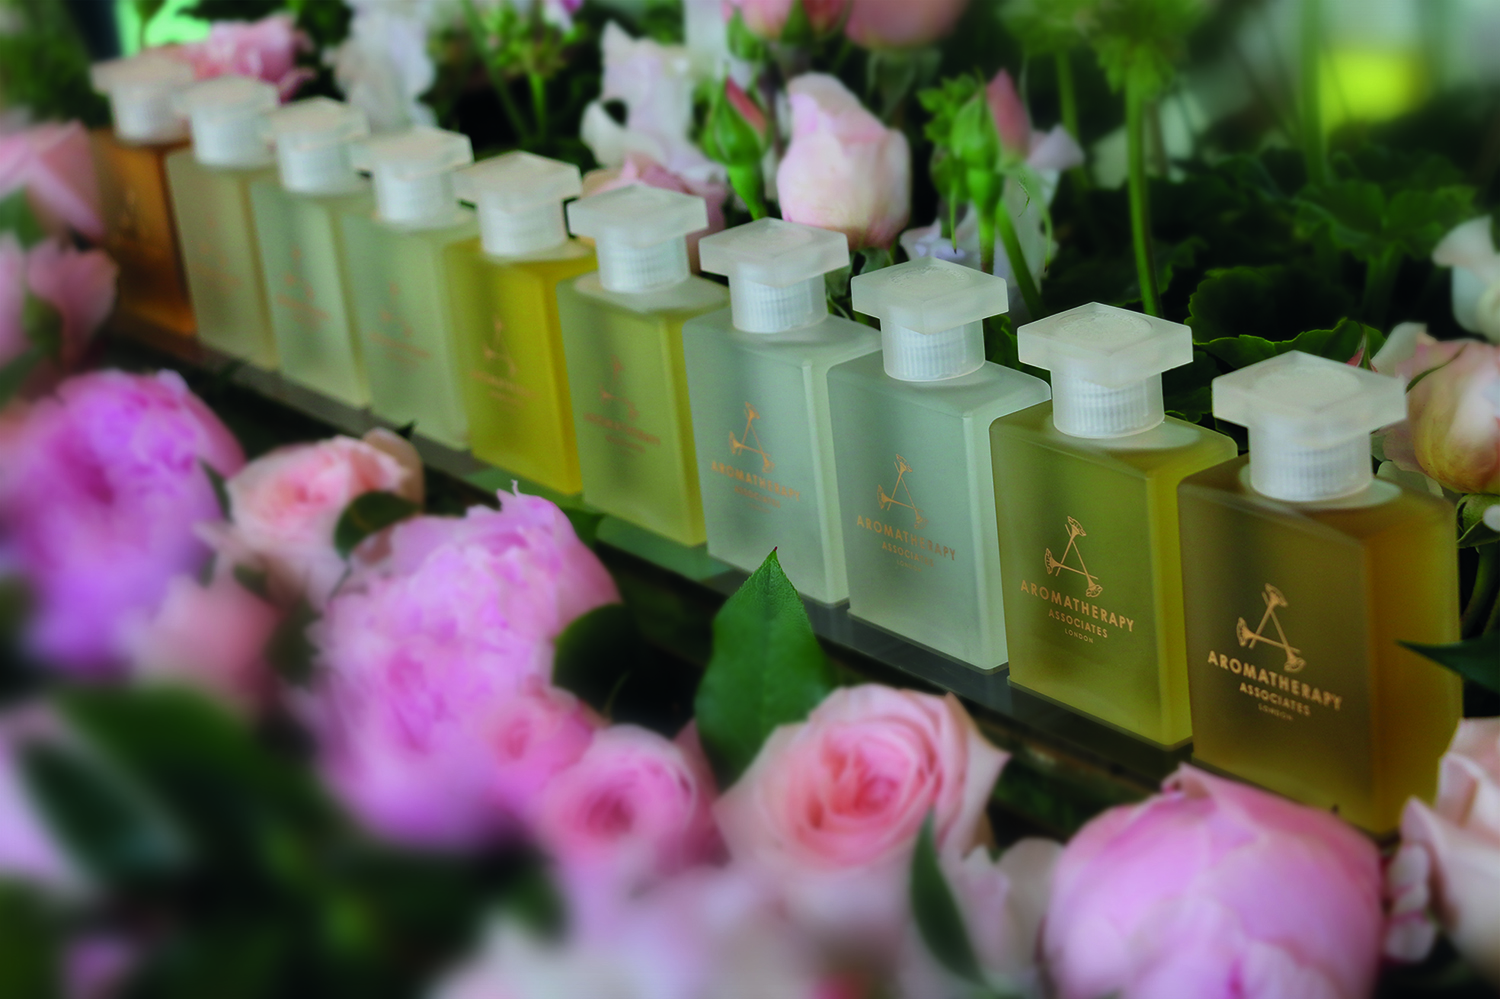 Aromatherapy Associates is a natural skincare line that uses the finest ingredients, purest extracts and essential oils.